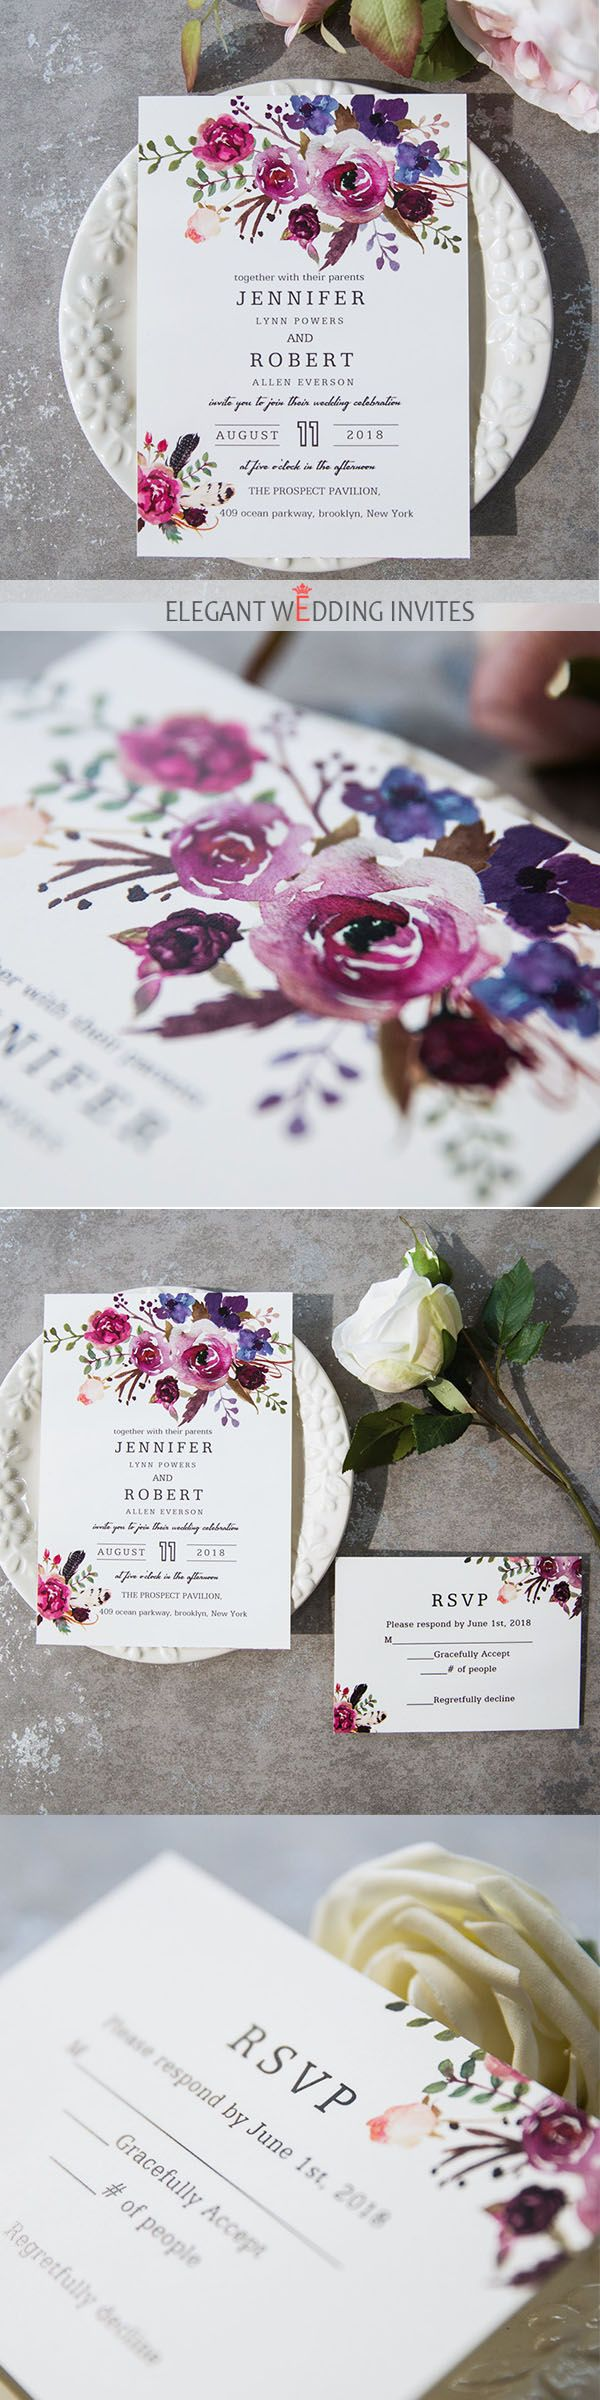 purple white silver wedding invitations%0A as low as       spring magenta shades of purple wedding invitations  weddinginvitations ElegantWeddingInvites